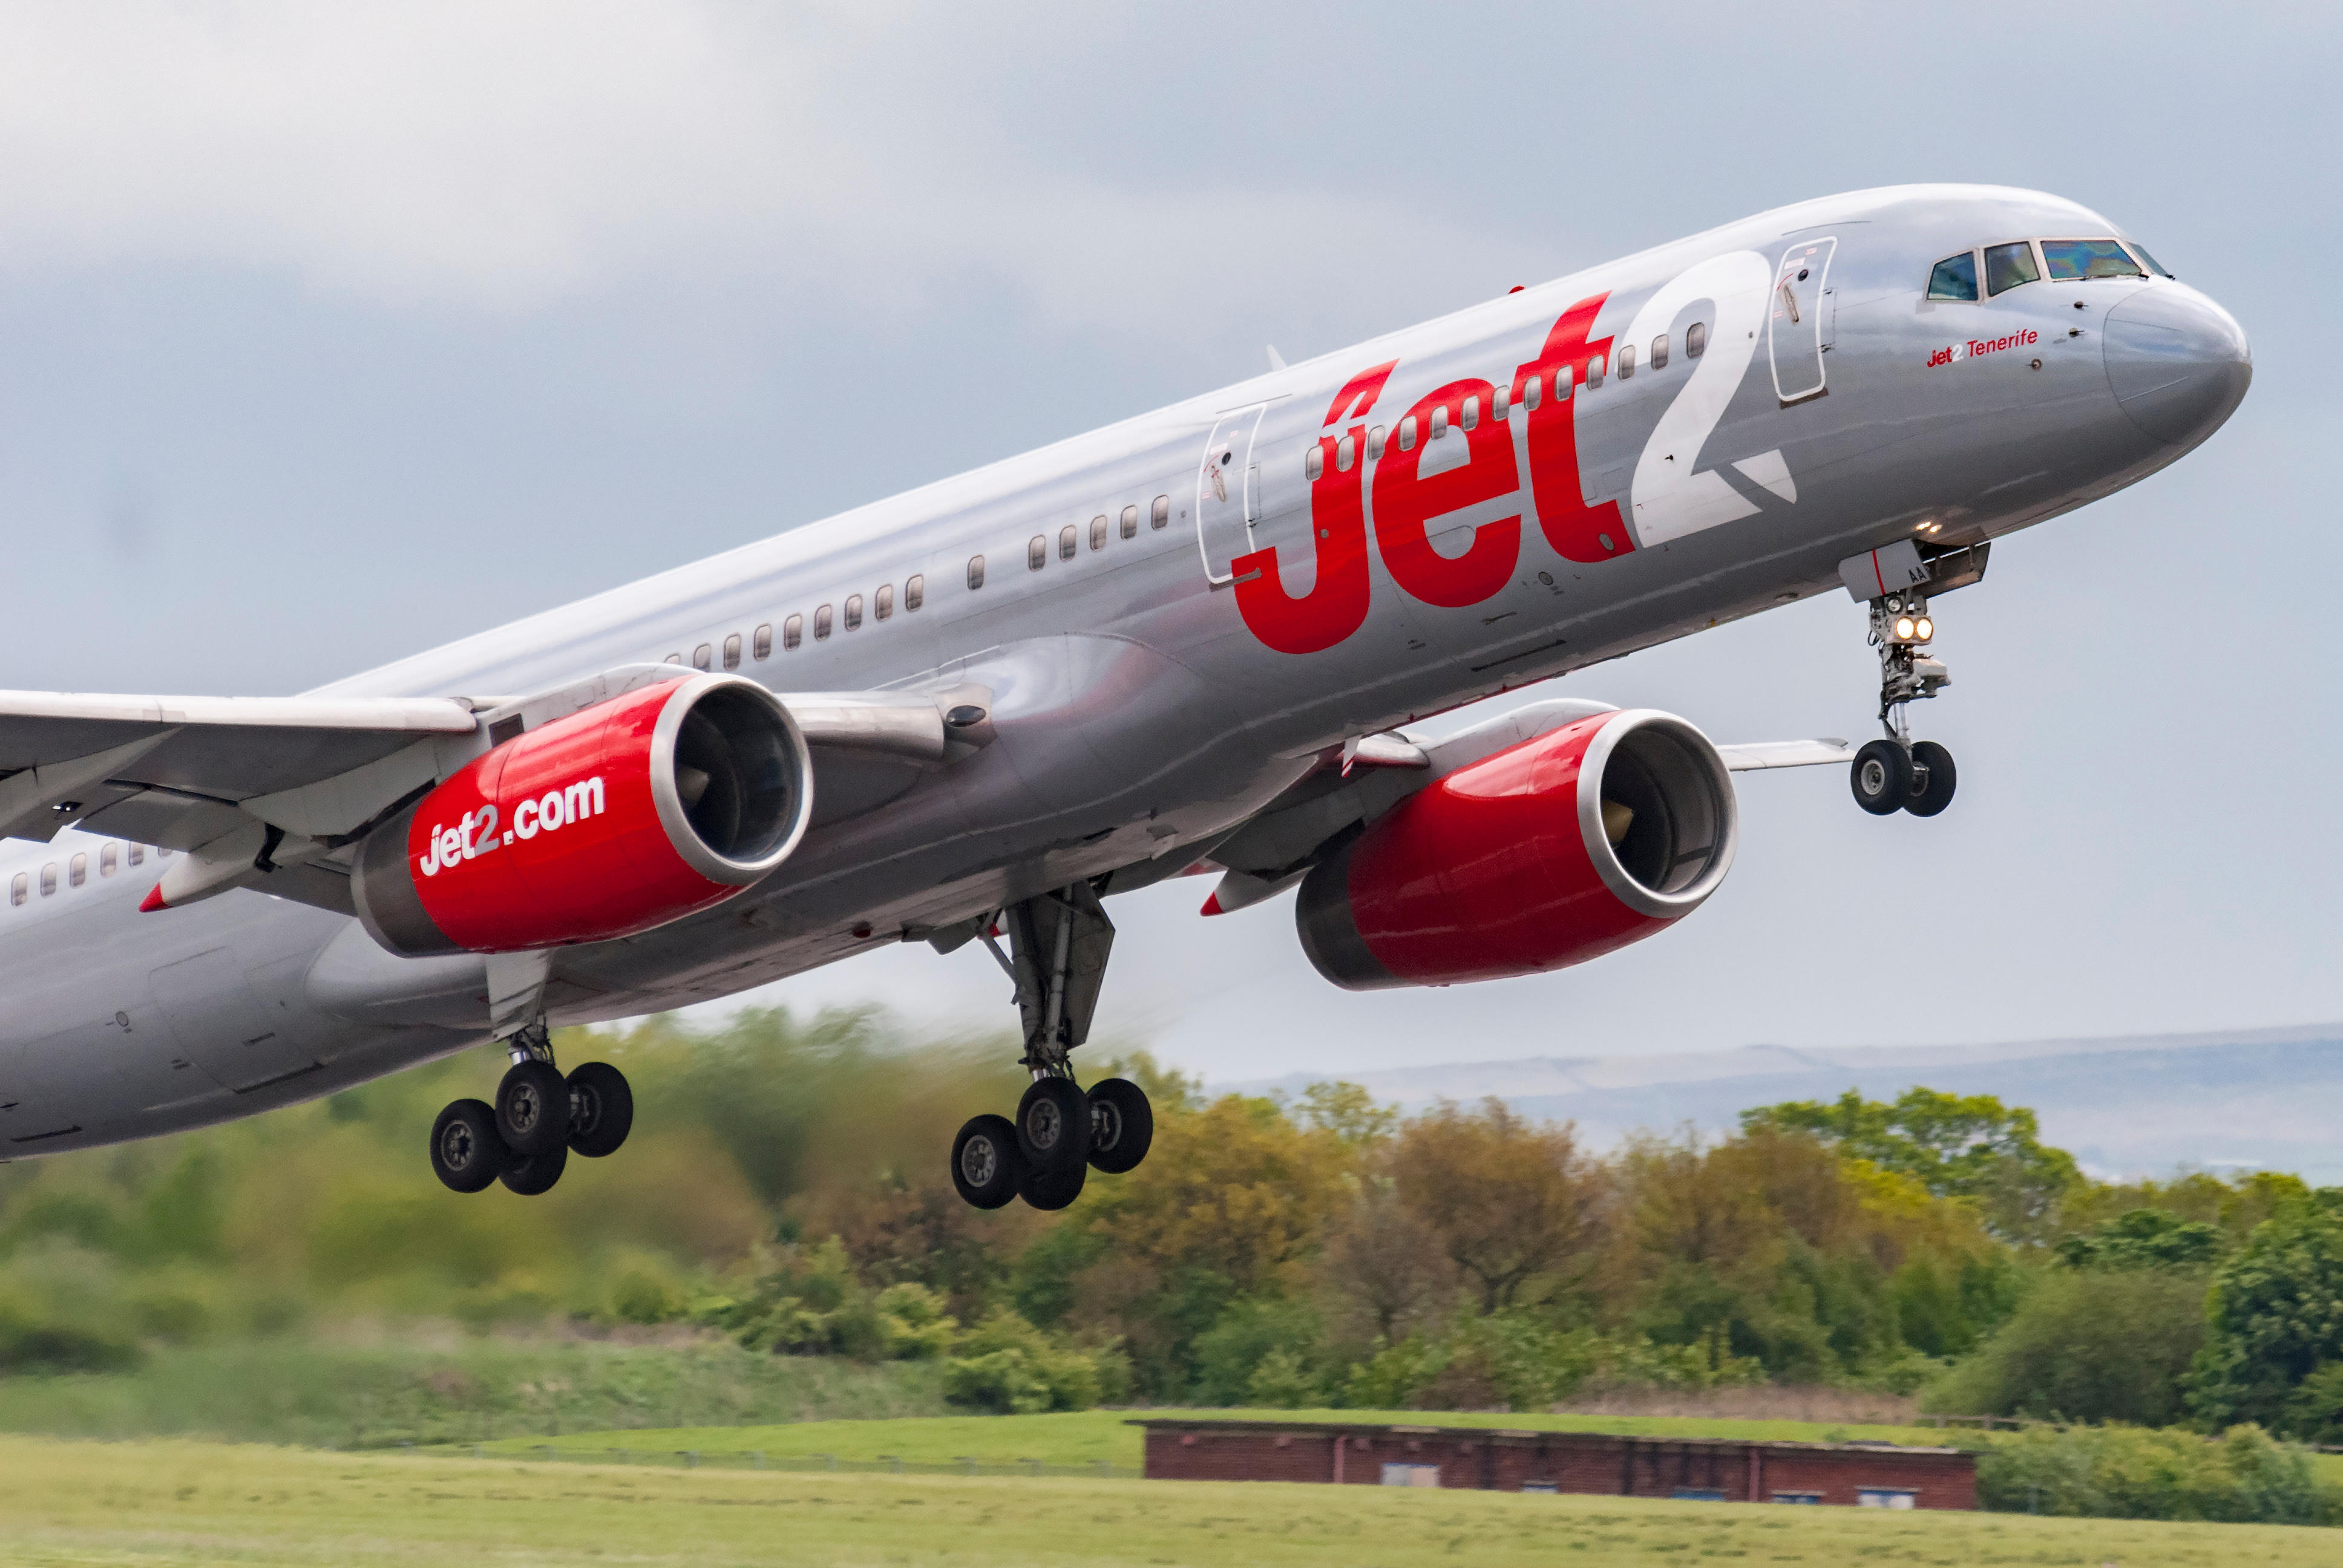 Jet2 has launched 60 more flights to Turkey as demand continues